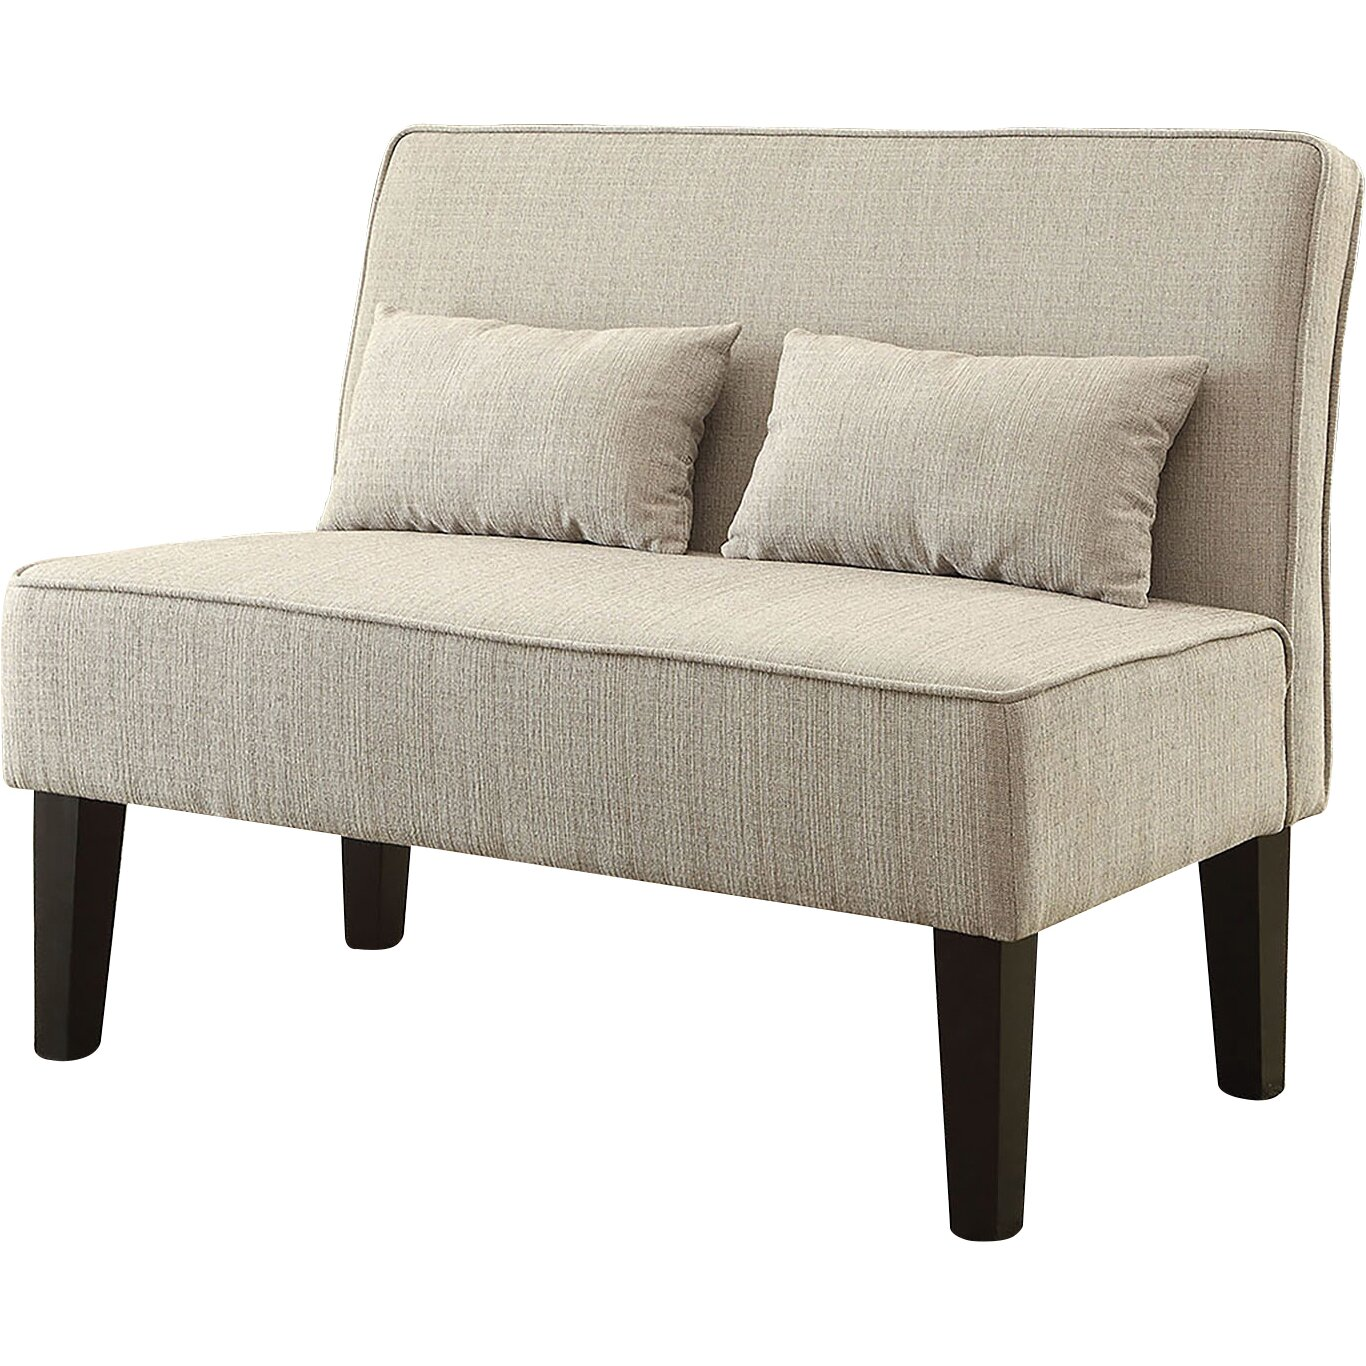 Upholstered Foyer Bench : A j homes studio upholstered entryway bench reviews